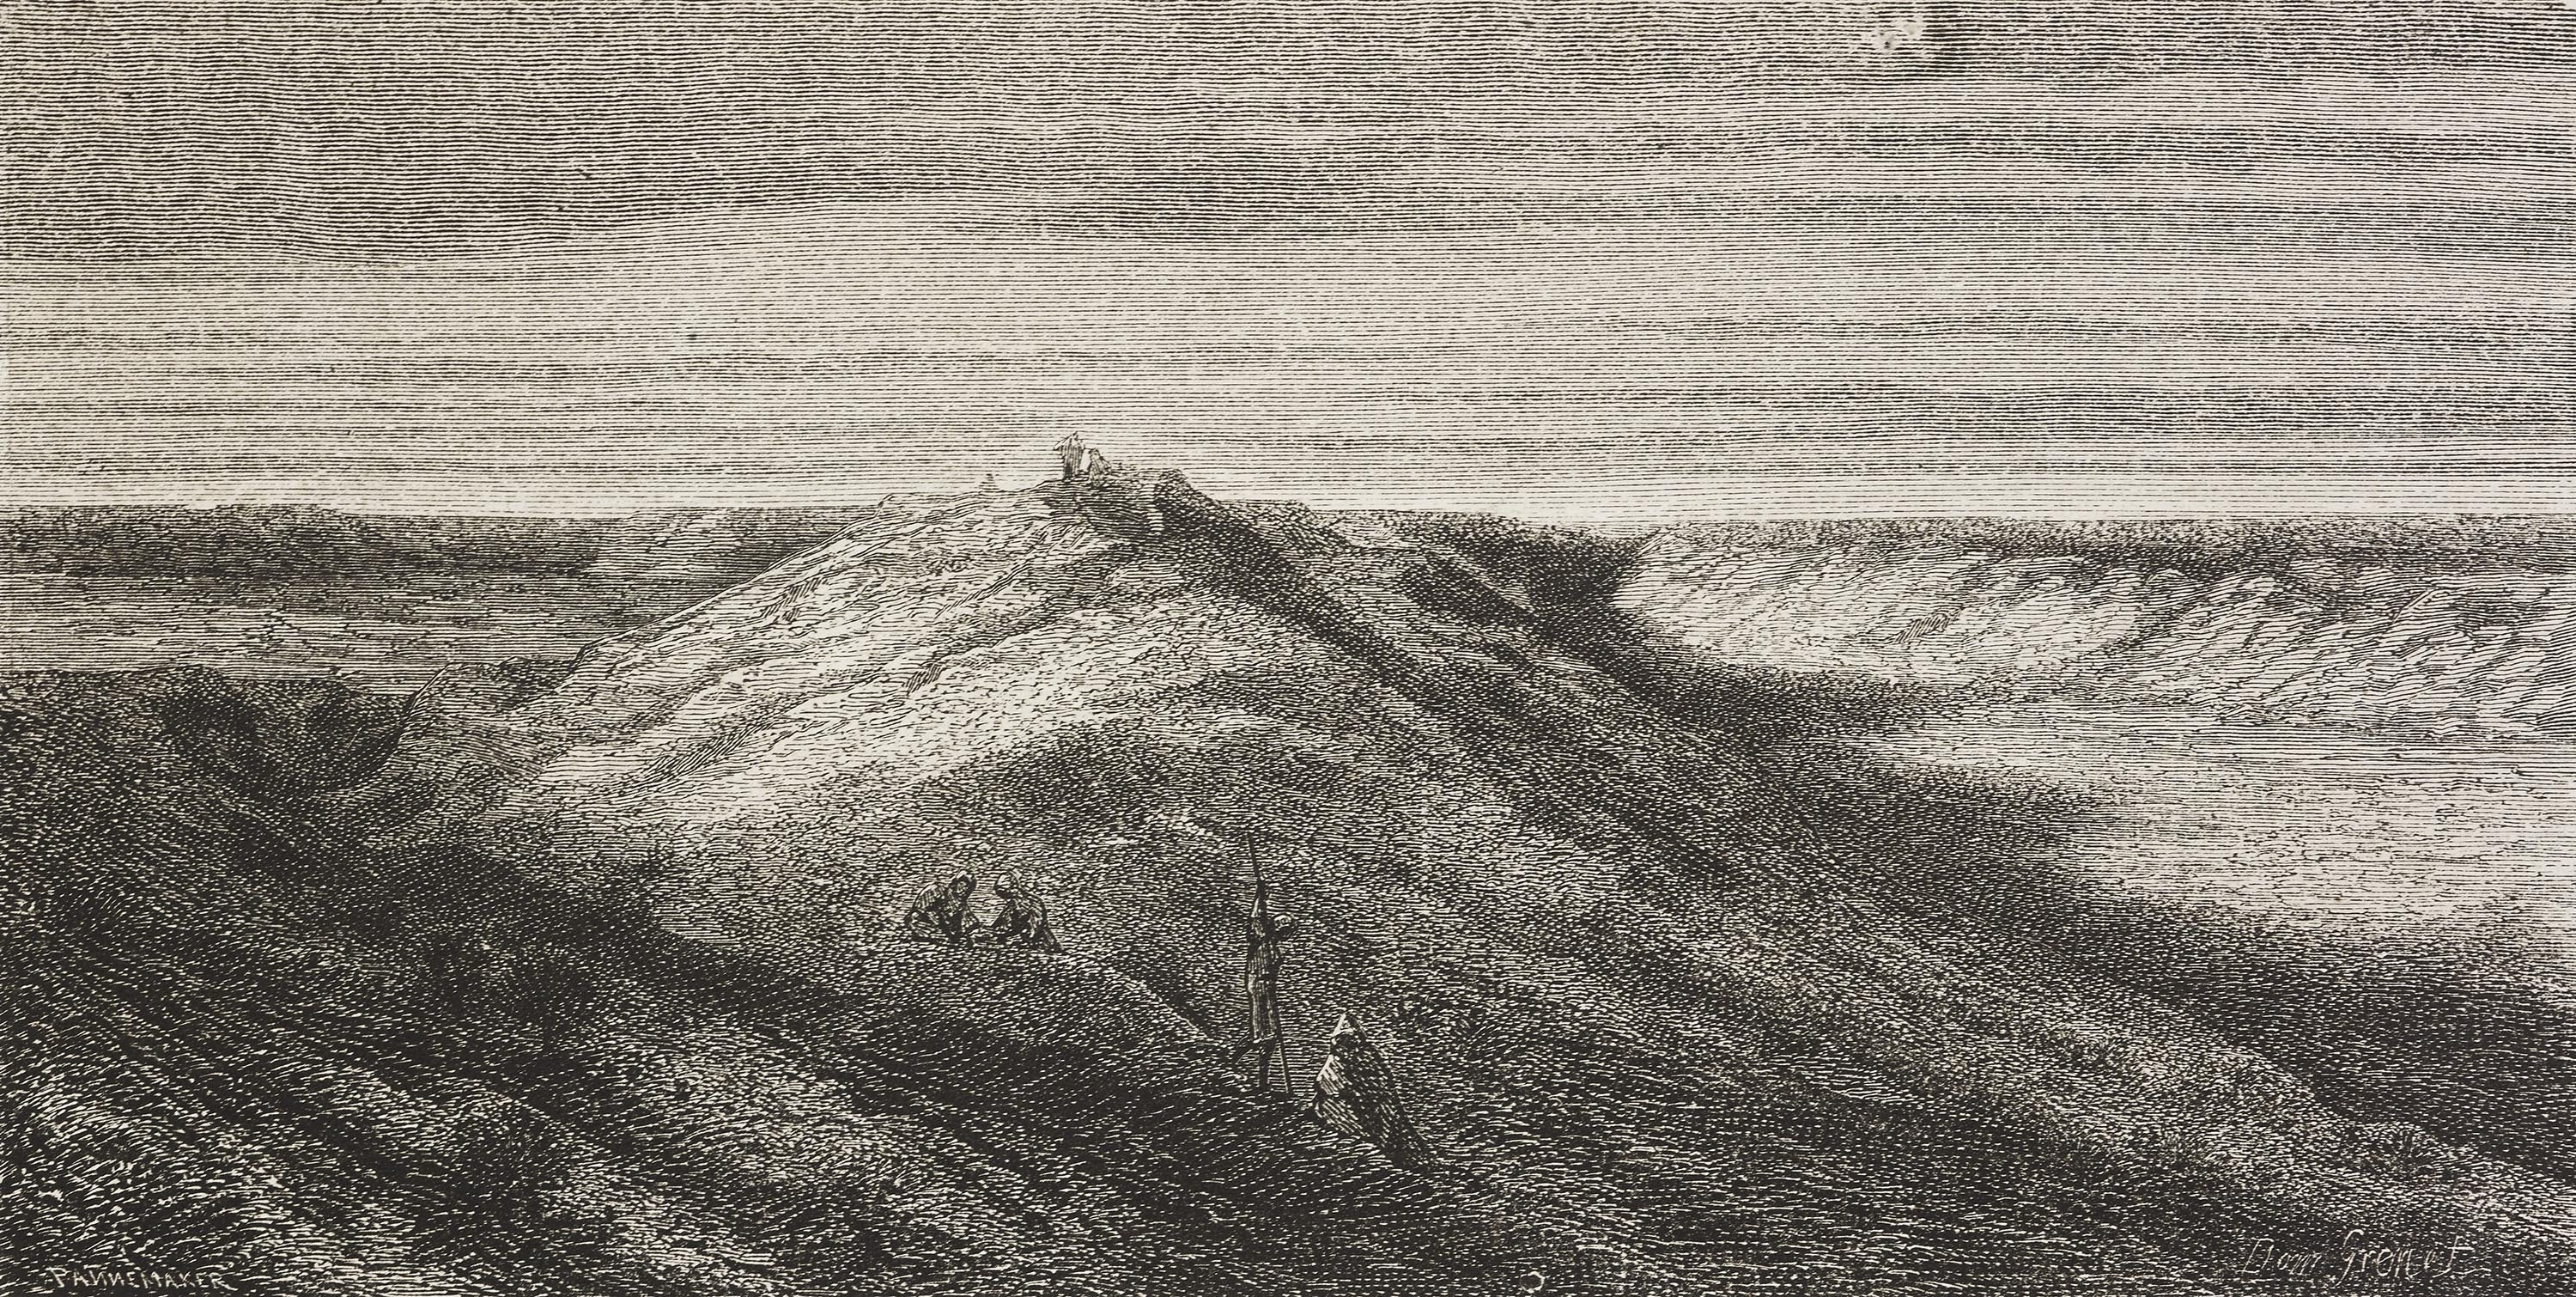 A drawing by Dominique Adolphe Grenet de Joigny shows a view of the ancient Necho's Canal, Egypt. (Getty Images)